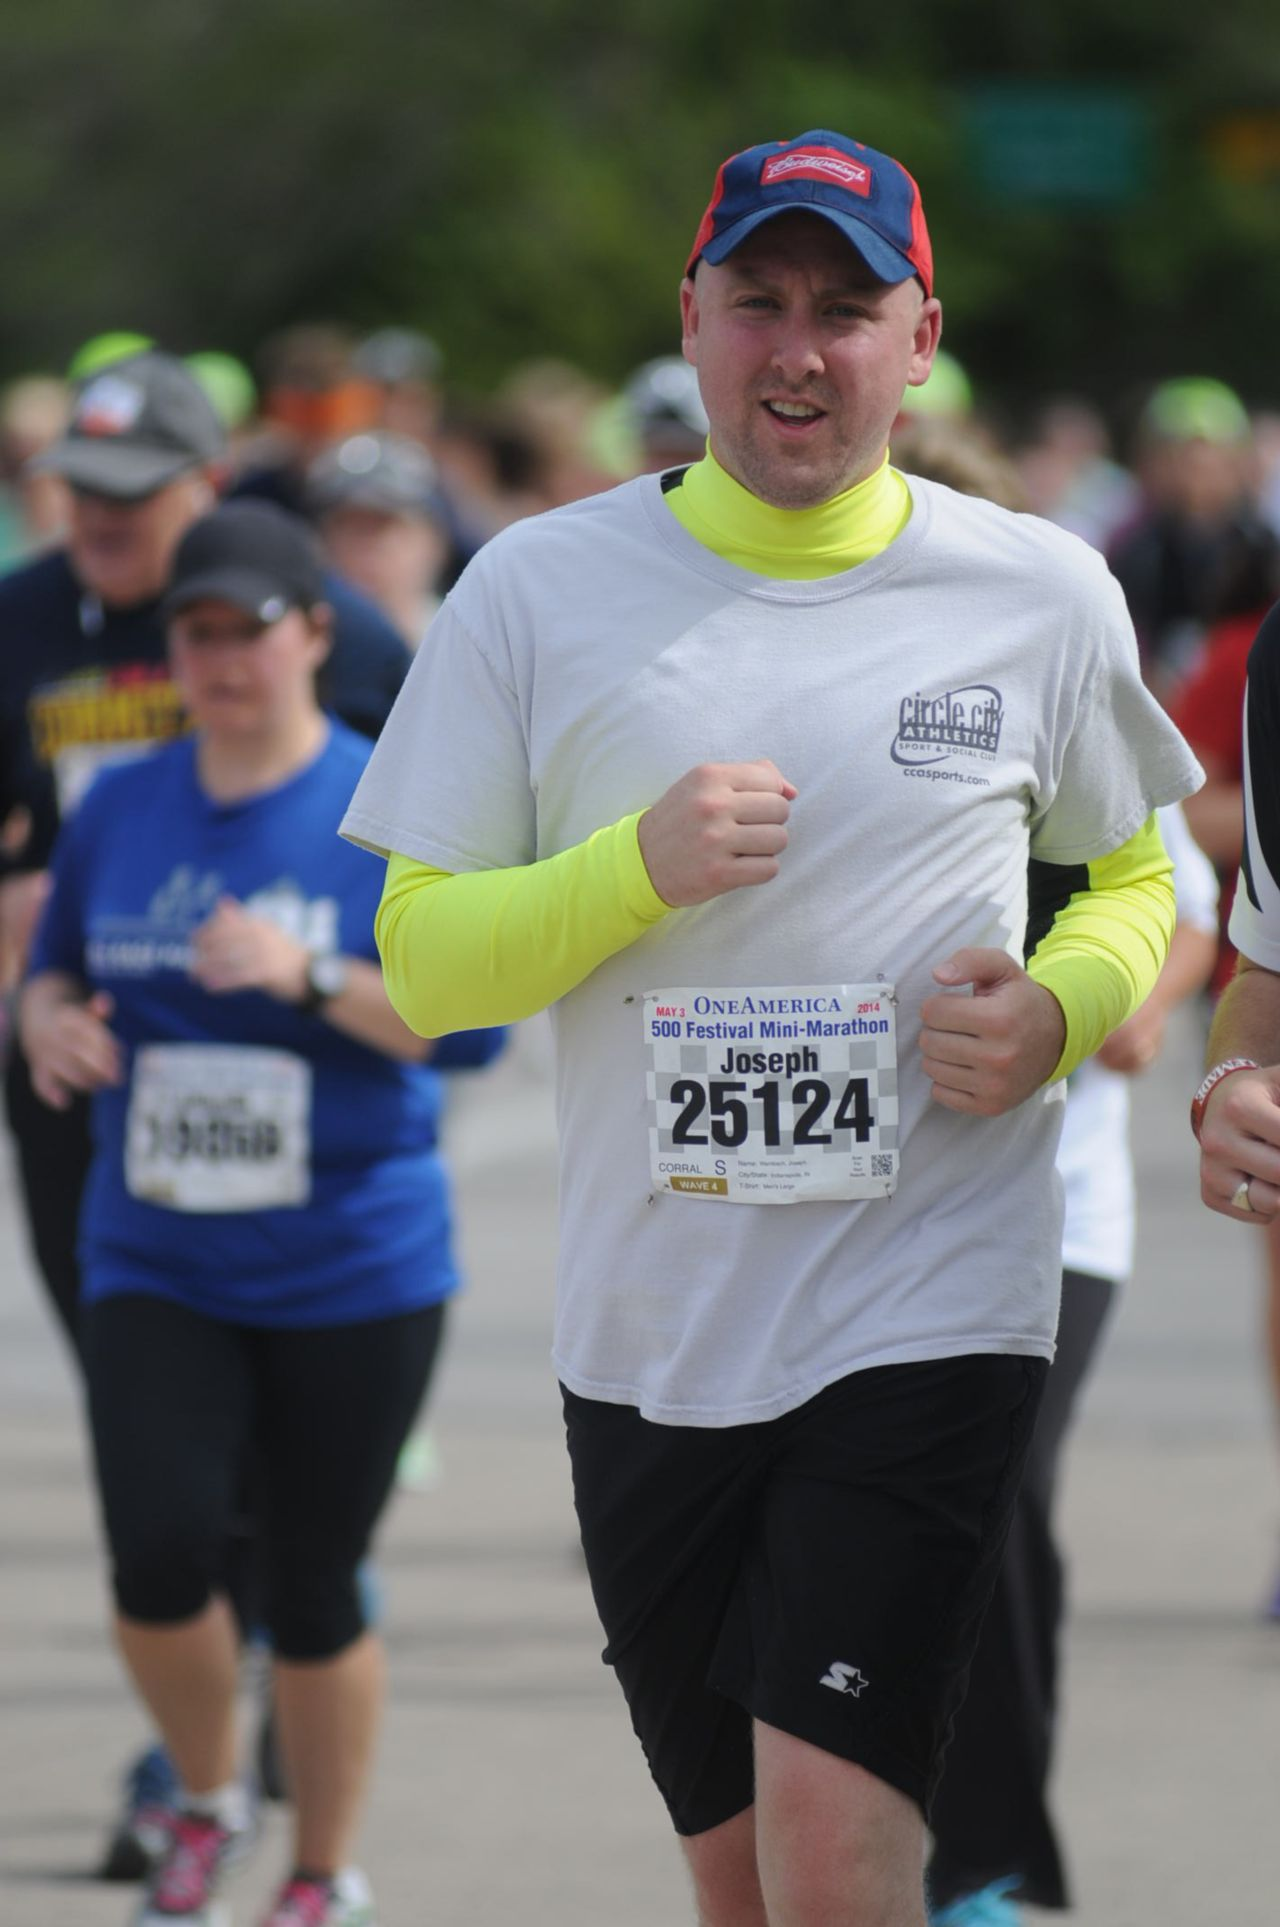 Attorney Joe Wambach Runs in Indianapolis Mini-Marathon